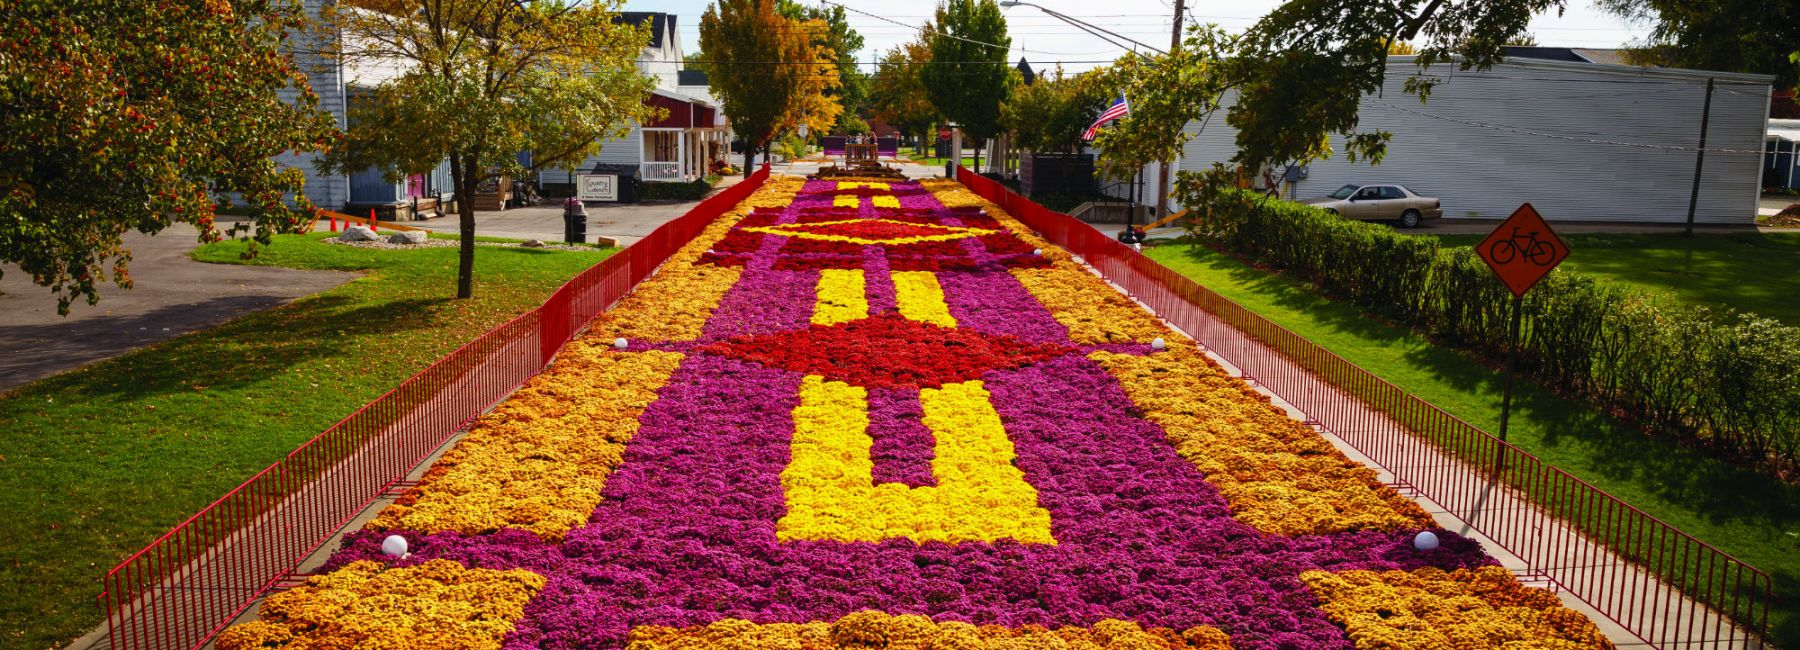 Elkhart Fall Flower Carpet